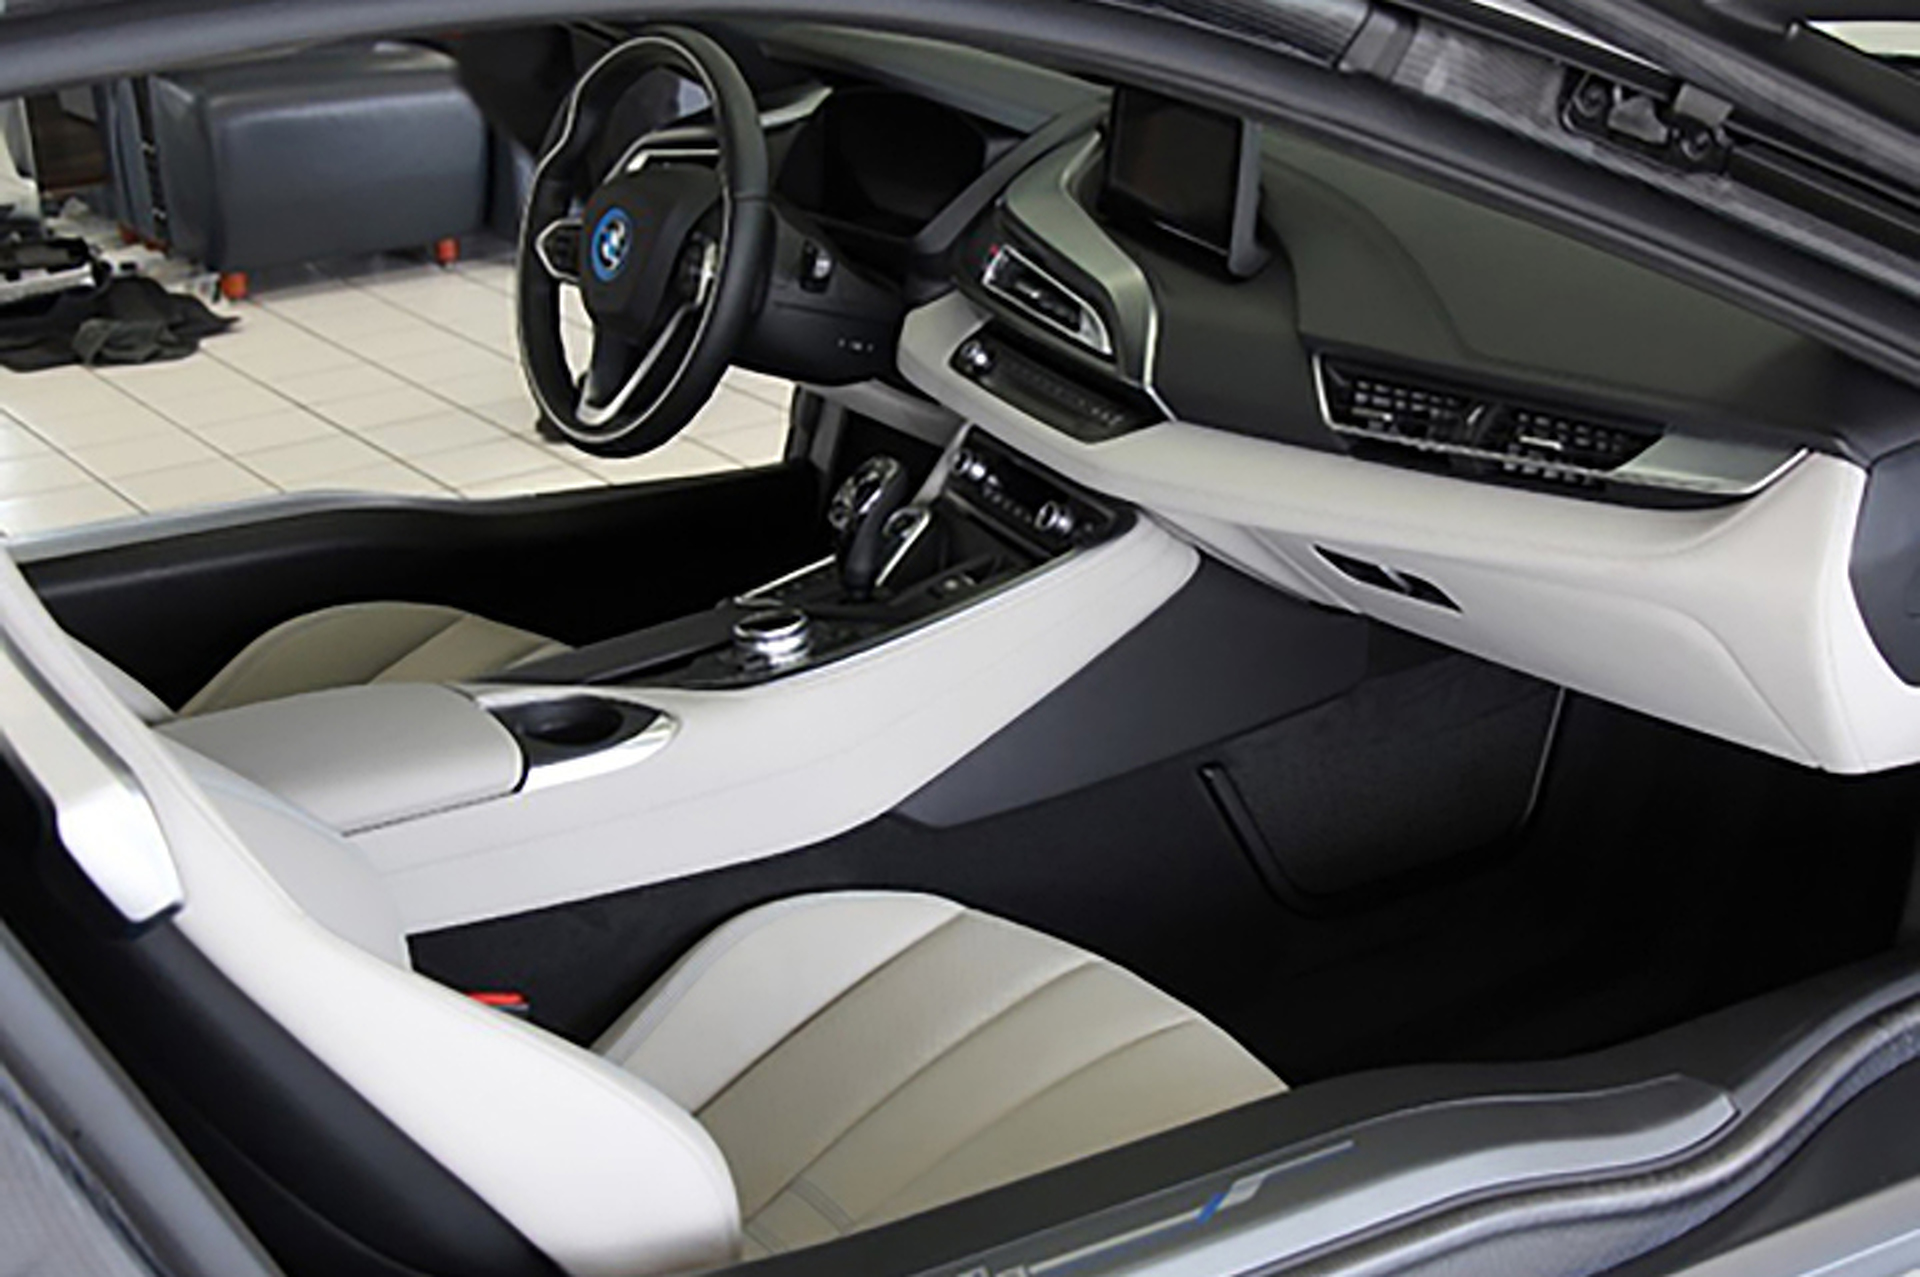 of en sale plug dalbergia gallery home brown asset coupe new textile hybrid leather natural lines i generation in coup grey mix features ivory bmw white line for the halo all carmum models